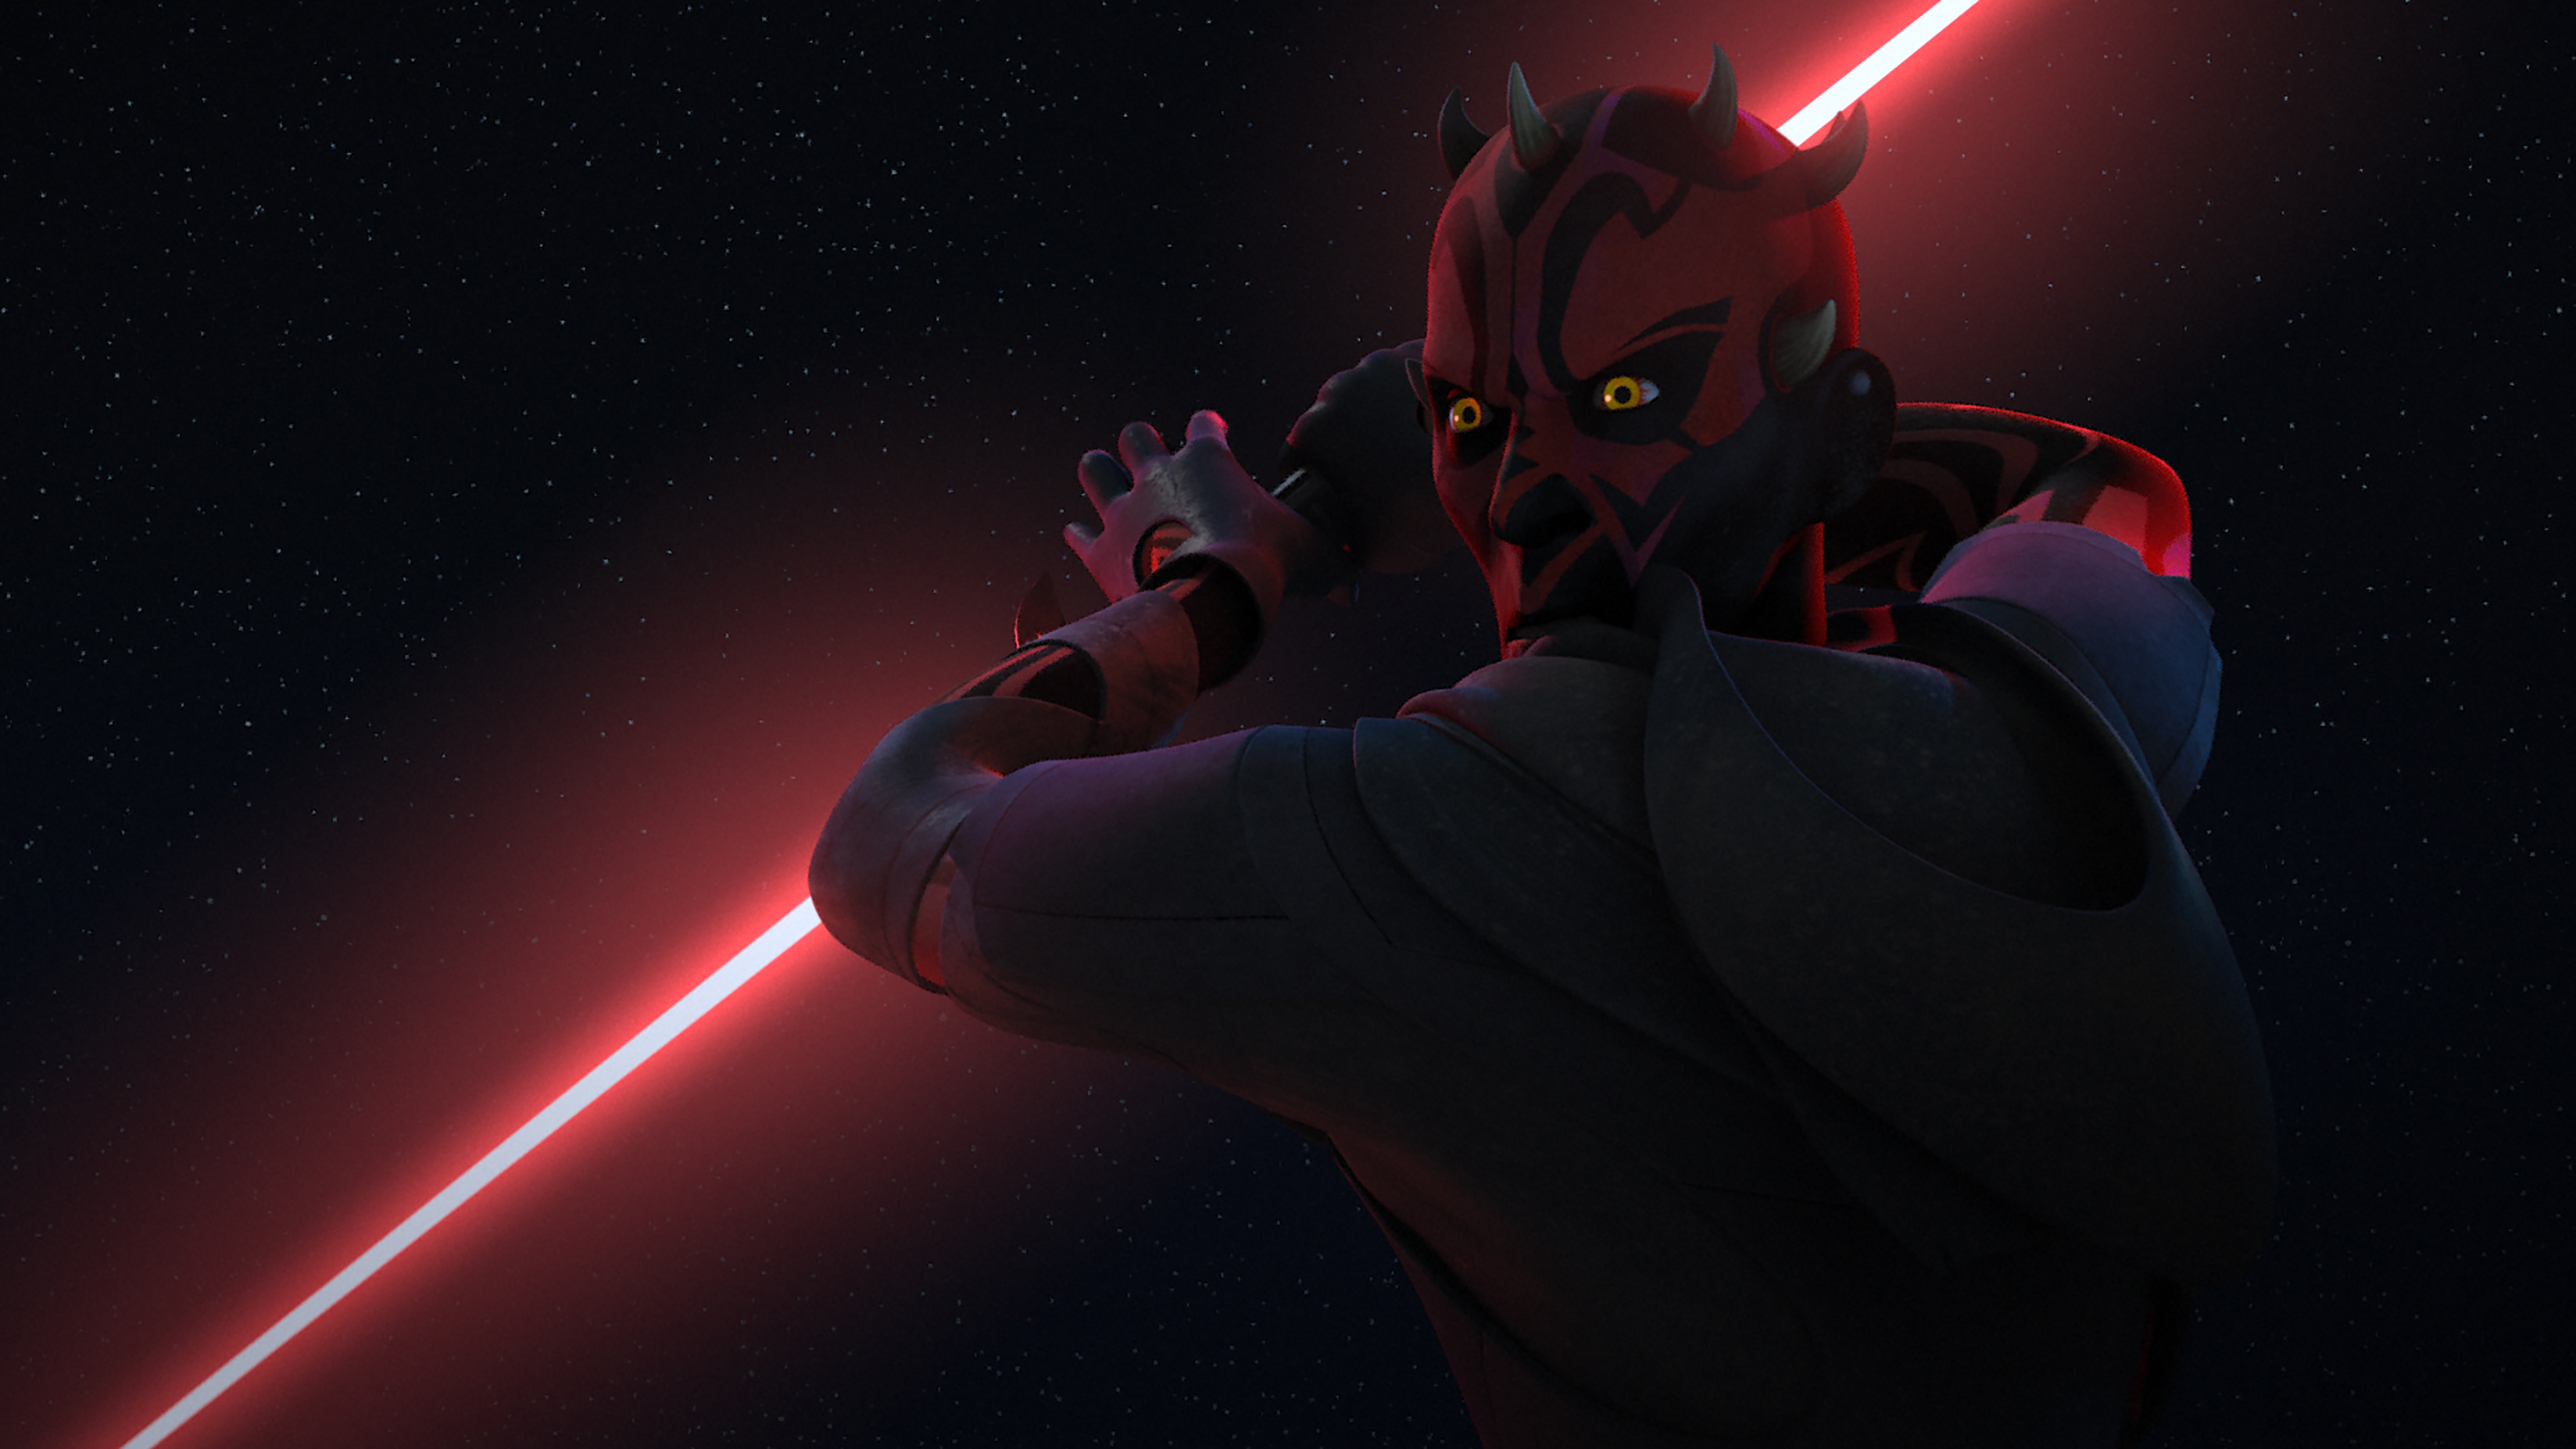 Stuff We Love Behind The Scenes Featurette In Star Wars Rebels Dvd Original Film  Season 1 Deconstructs A Duel Syfy Wire